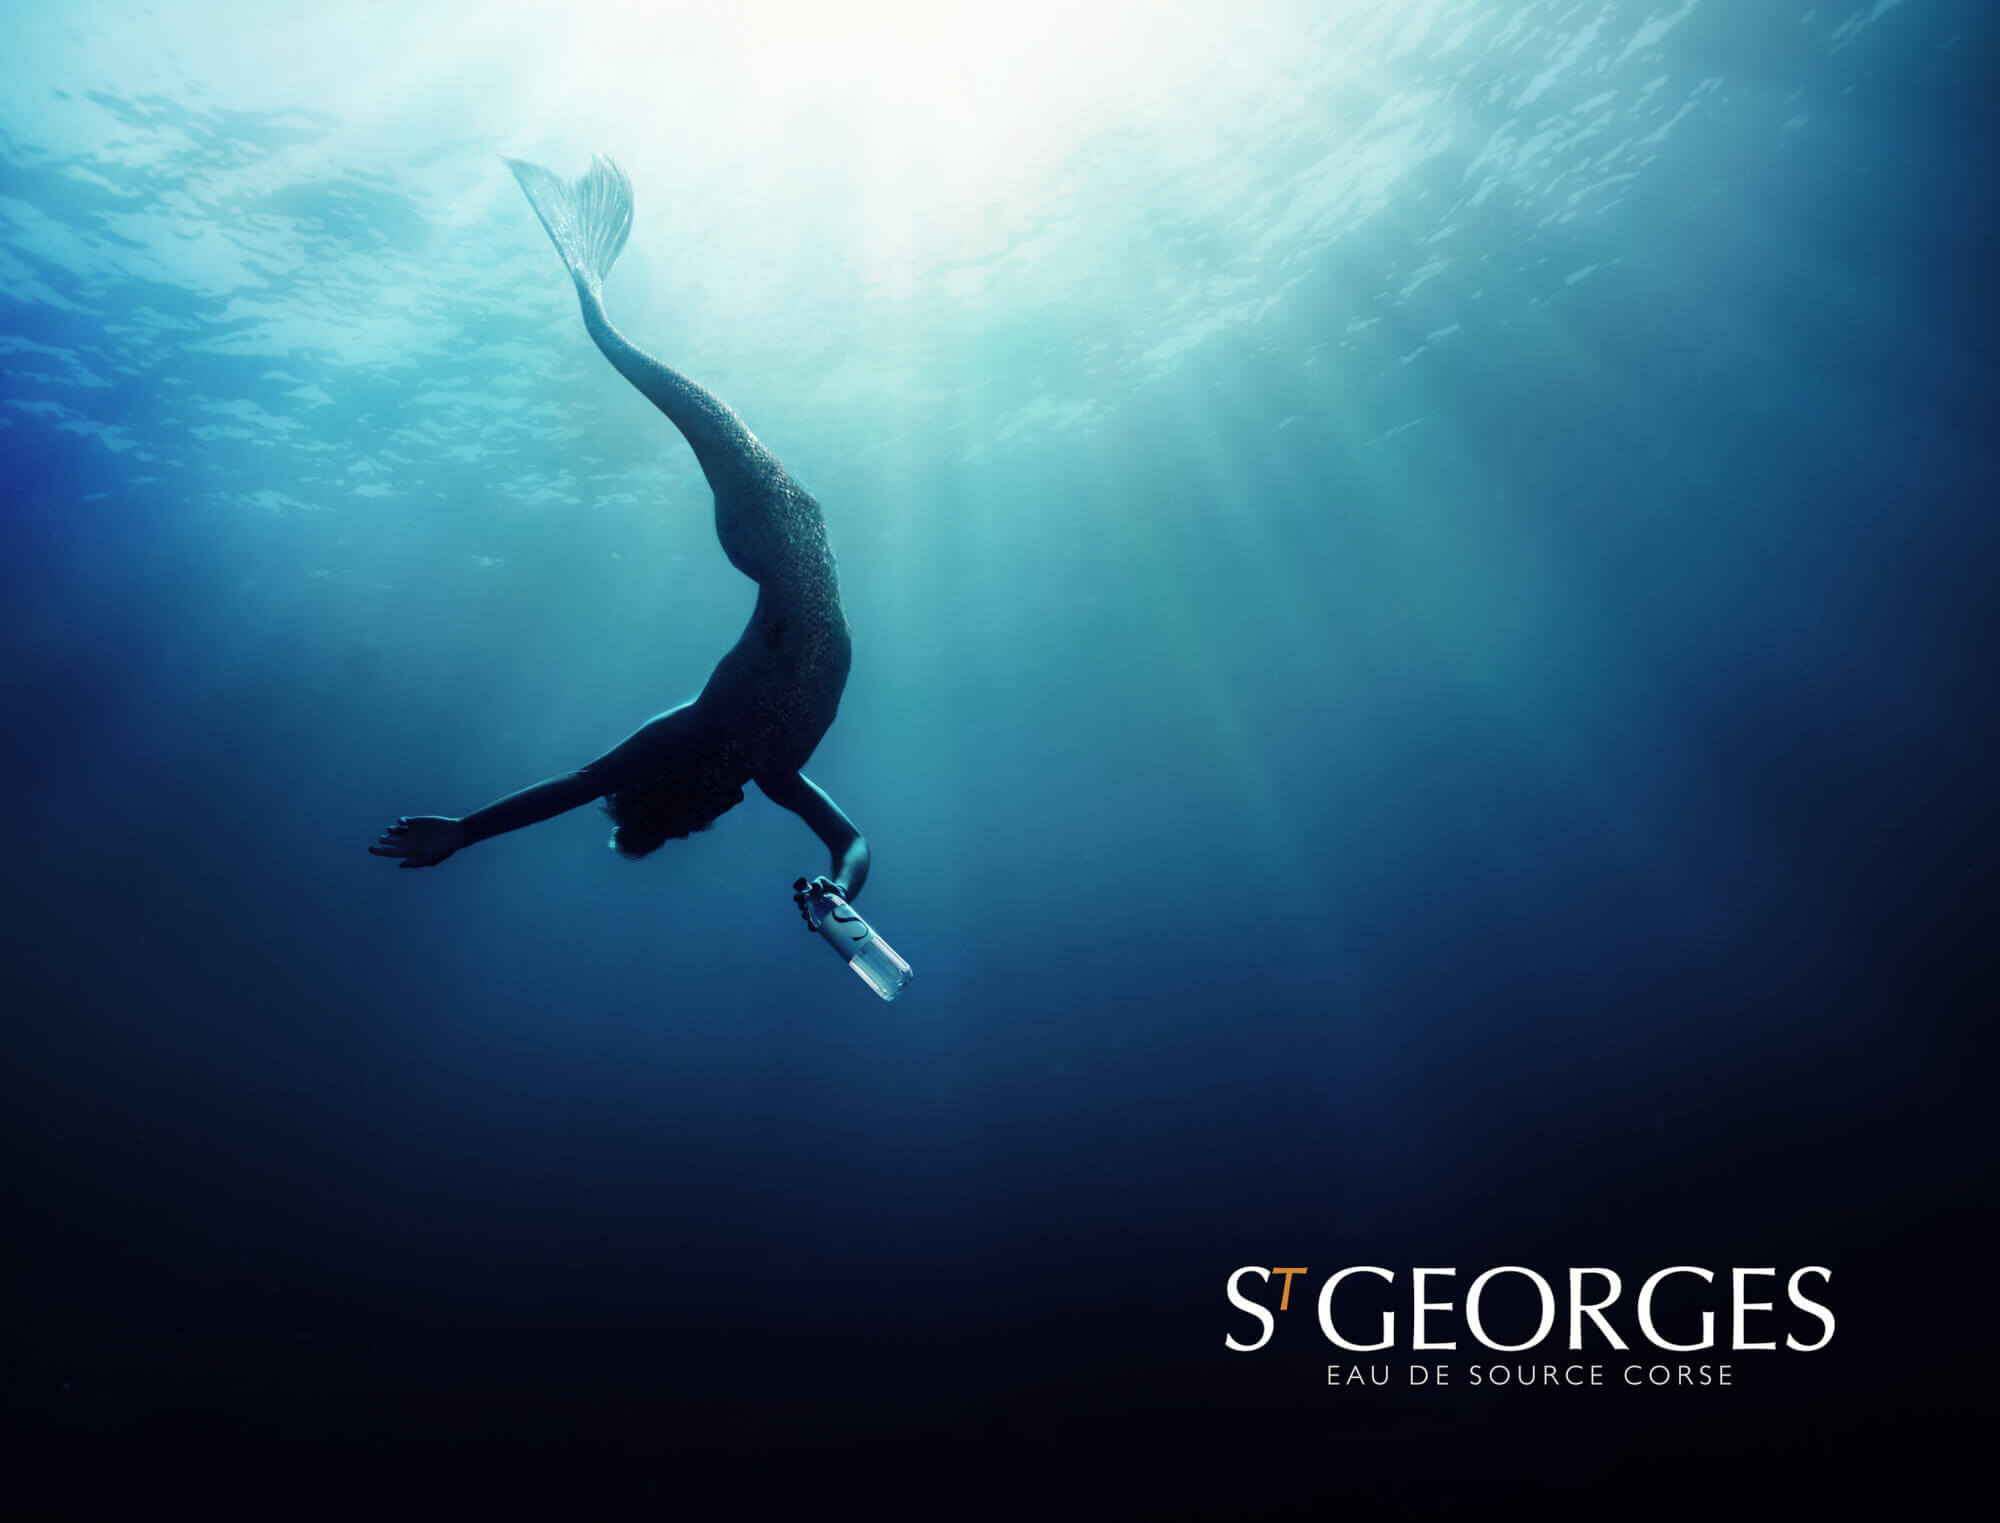 THE NEW VISUAL WATER CAMPAIGN ST GEORGES APPEALS TO INTERNATIONAL DIVE CHAMPIONS IN APNEA AND UNVEILS A POETIC AND TROUBLE MERMAN - Nutrition